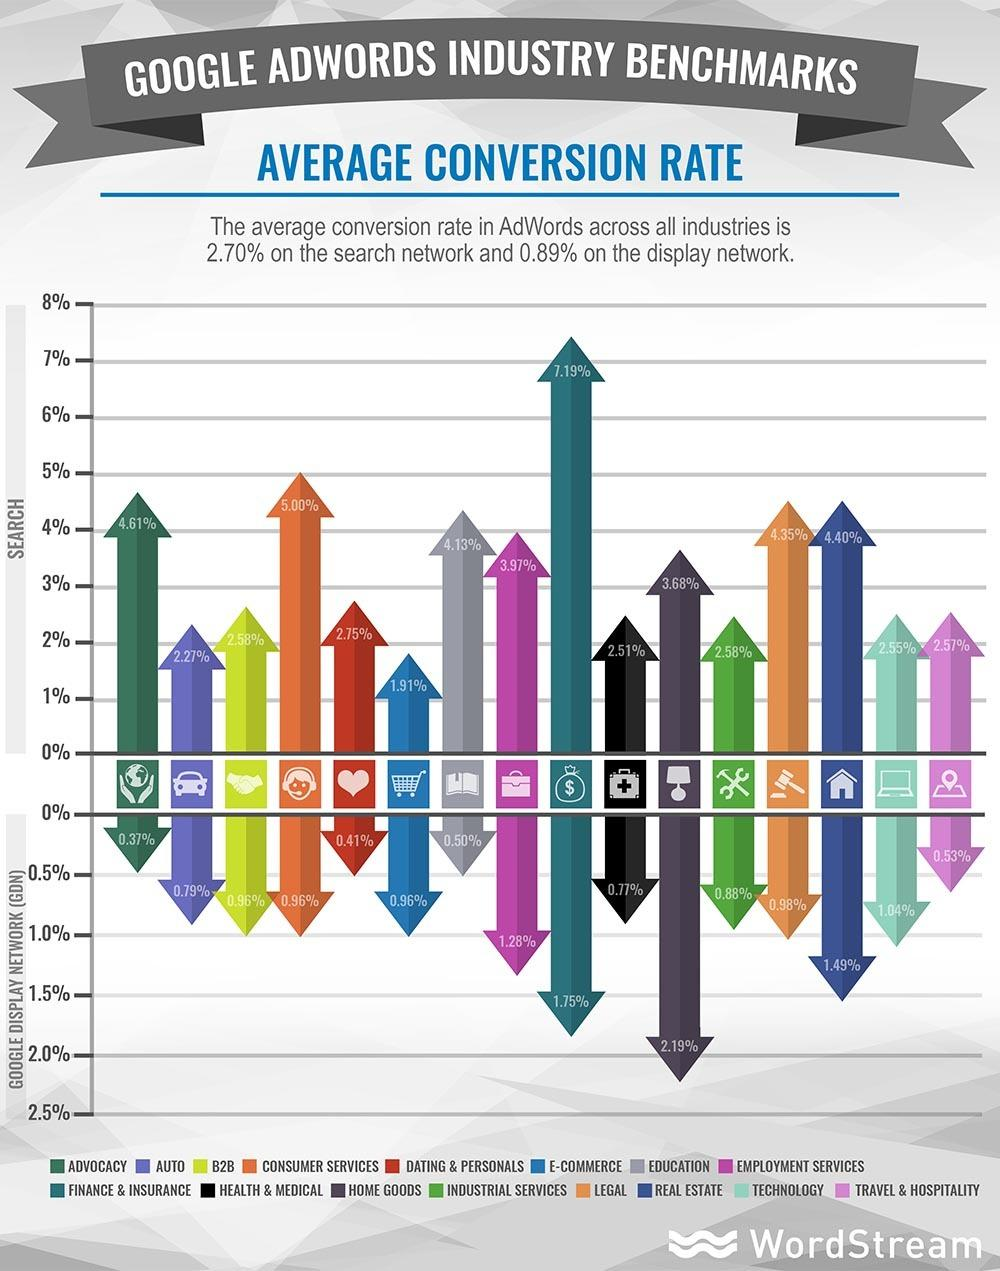 Google RankBrain average conversion rates